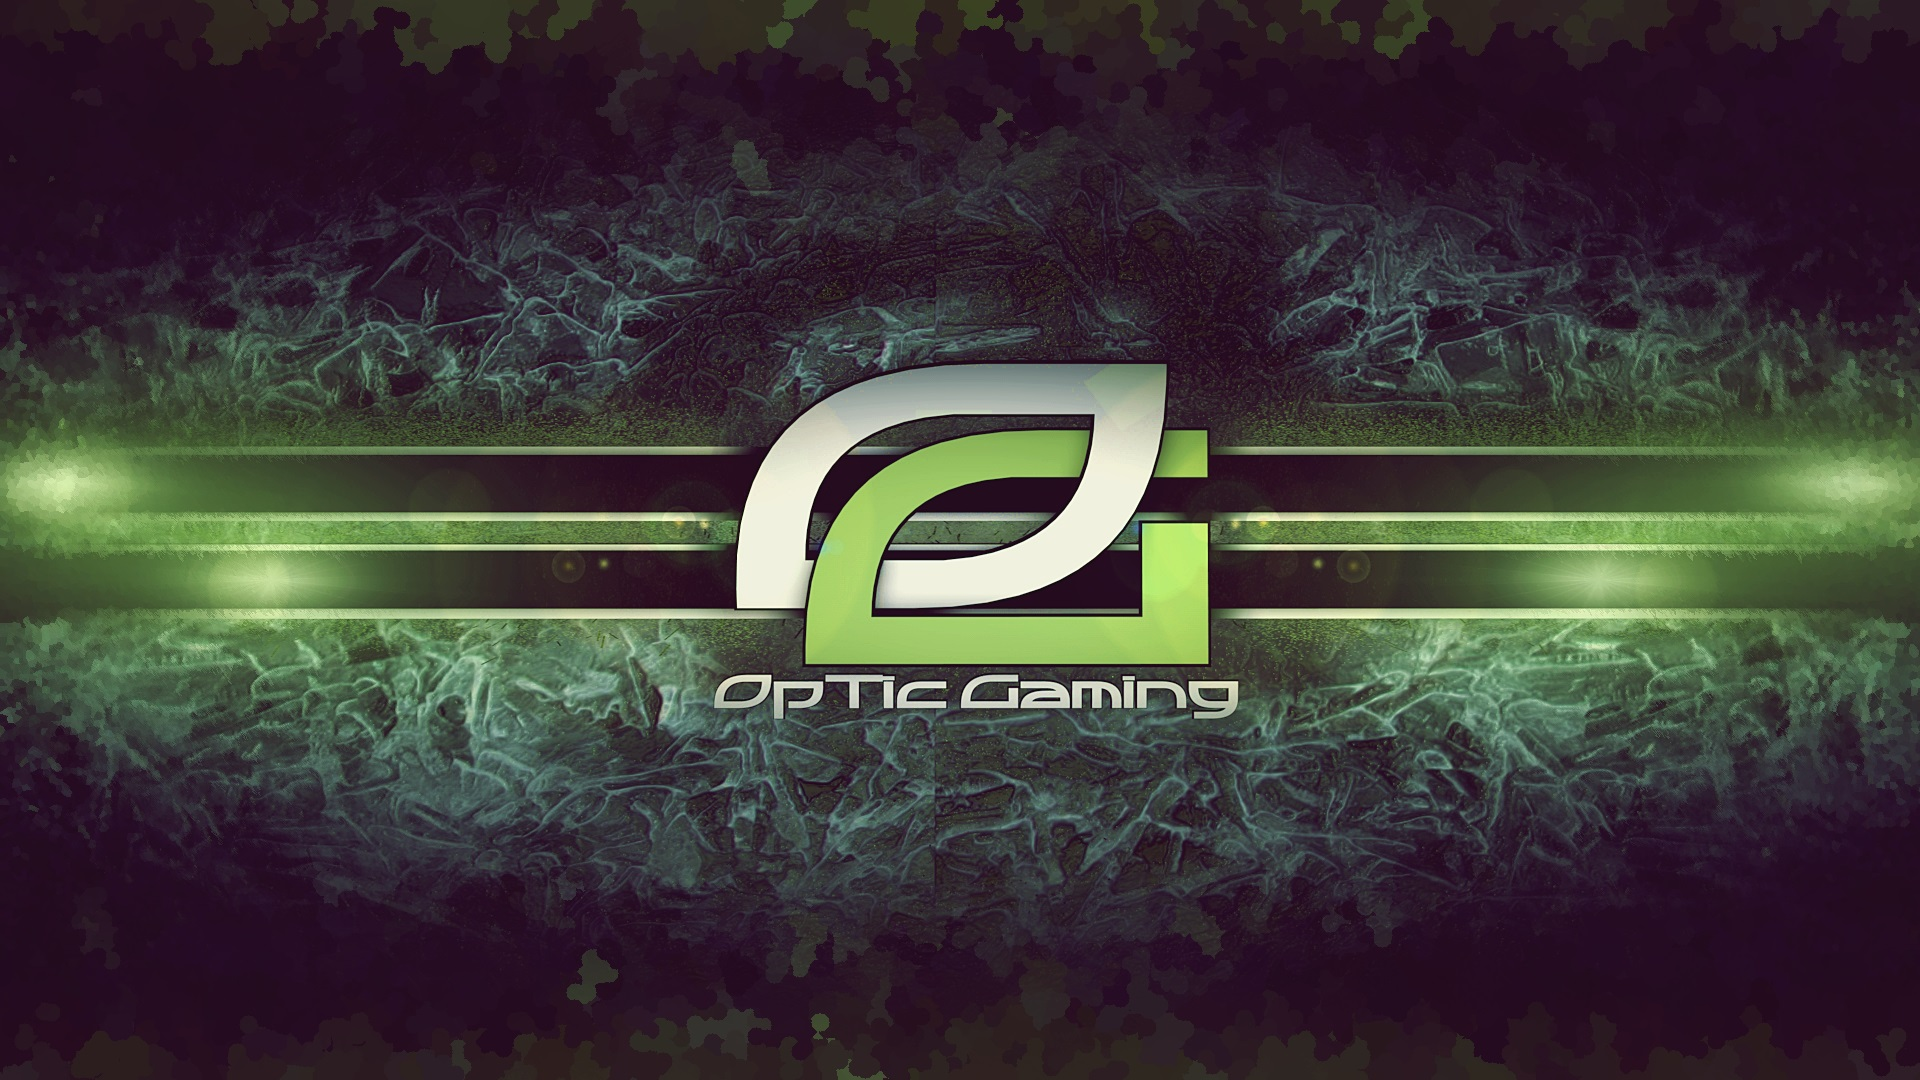 Optic Gaming Wallpaper Optic Gaming Wallpaper by 1920x1080